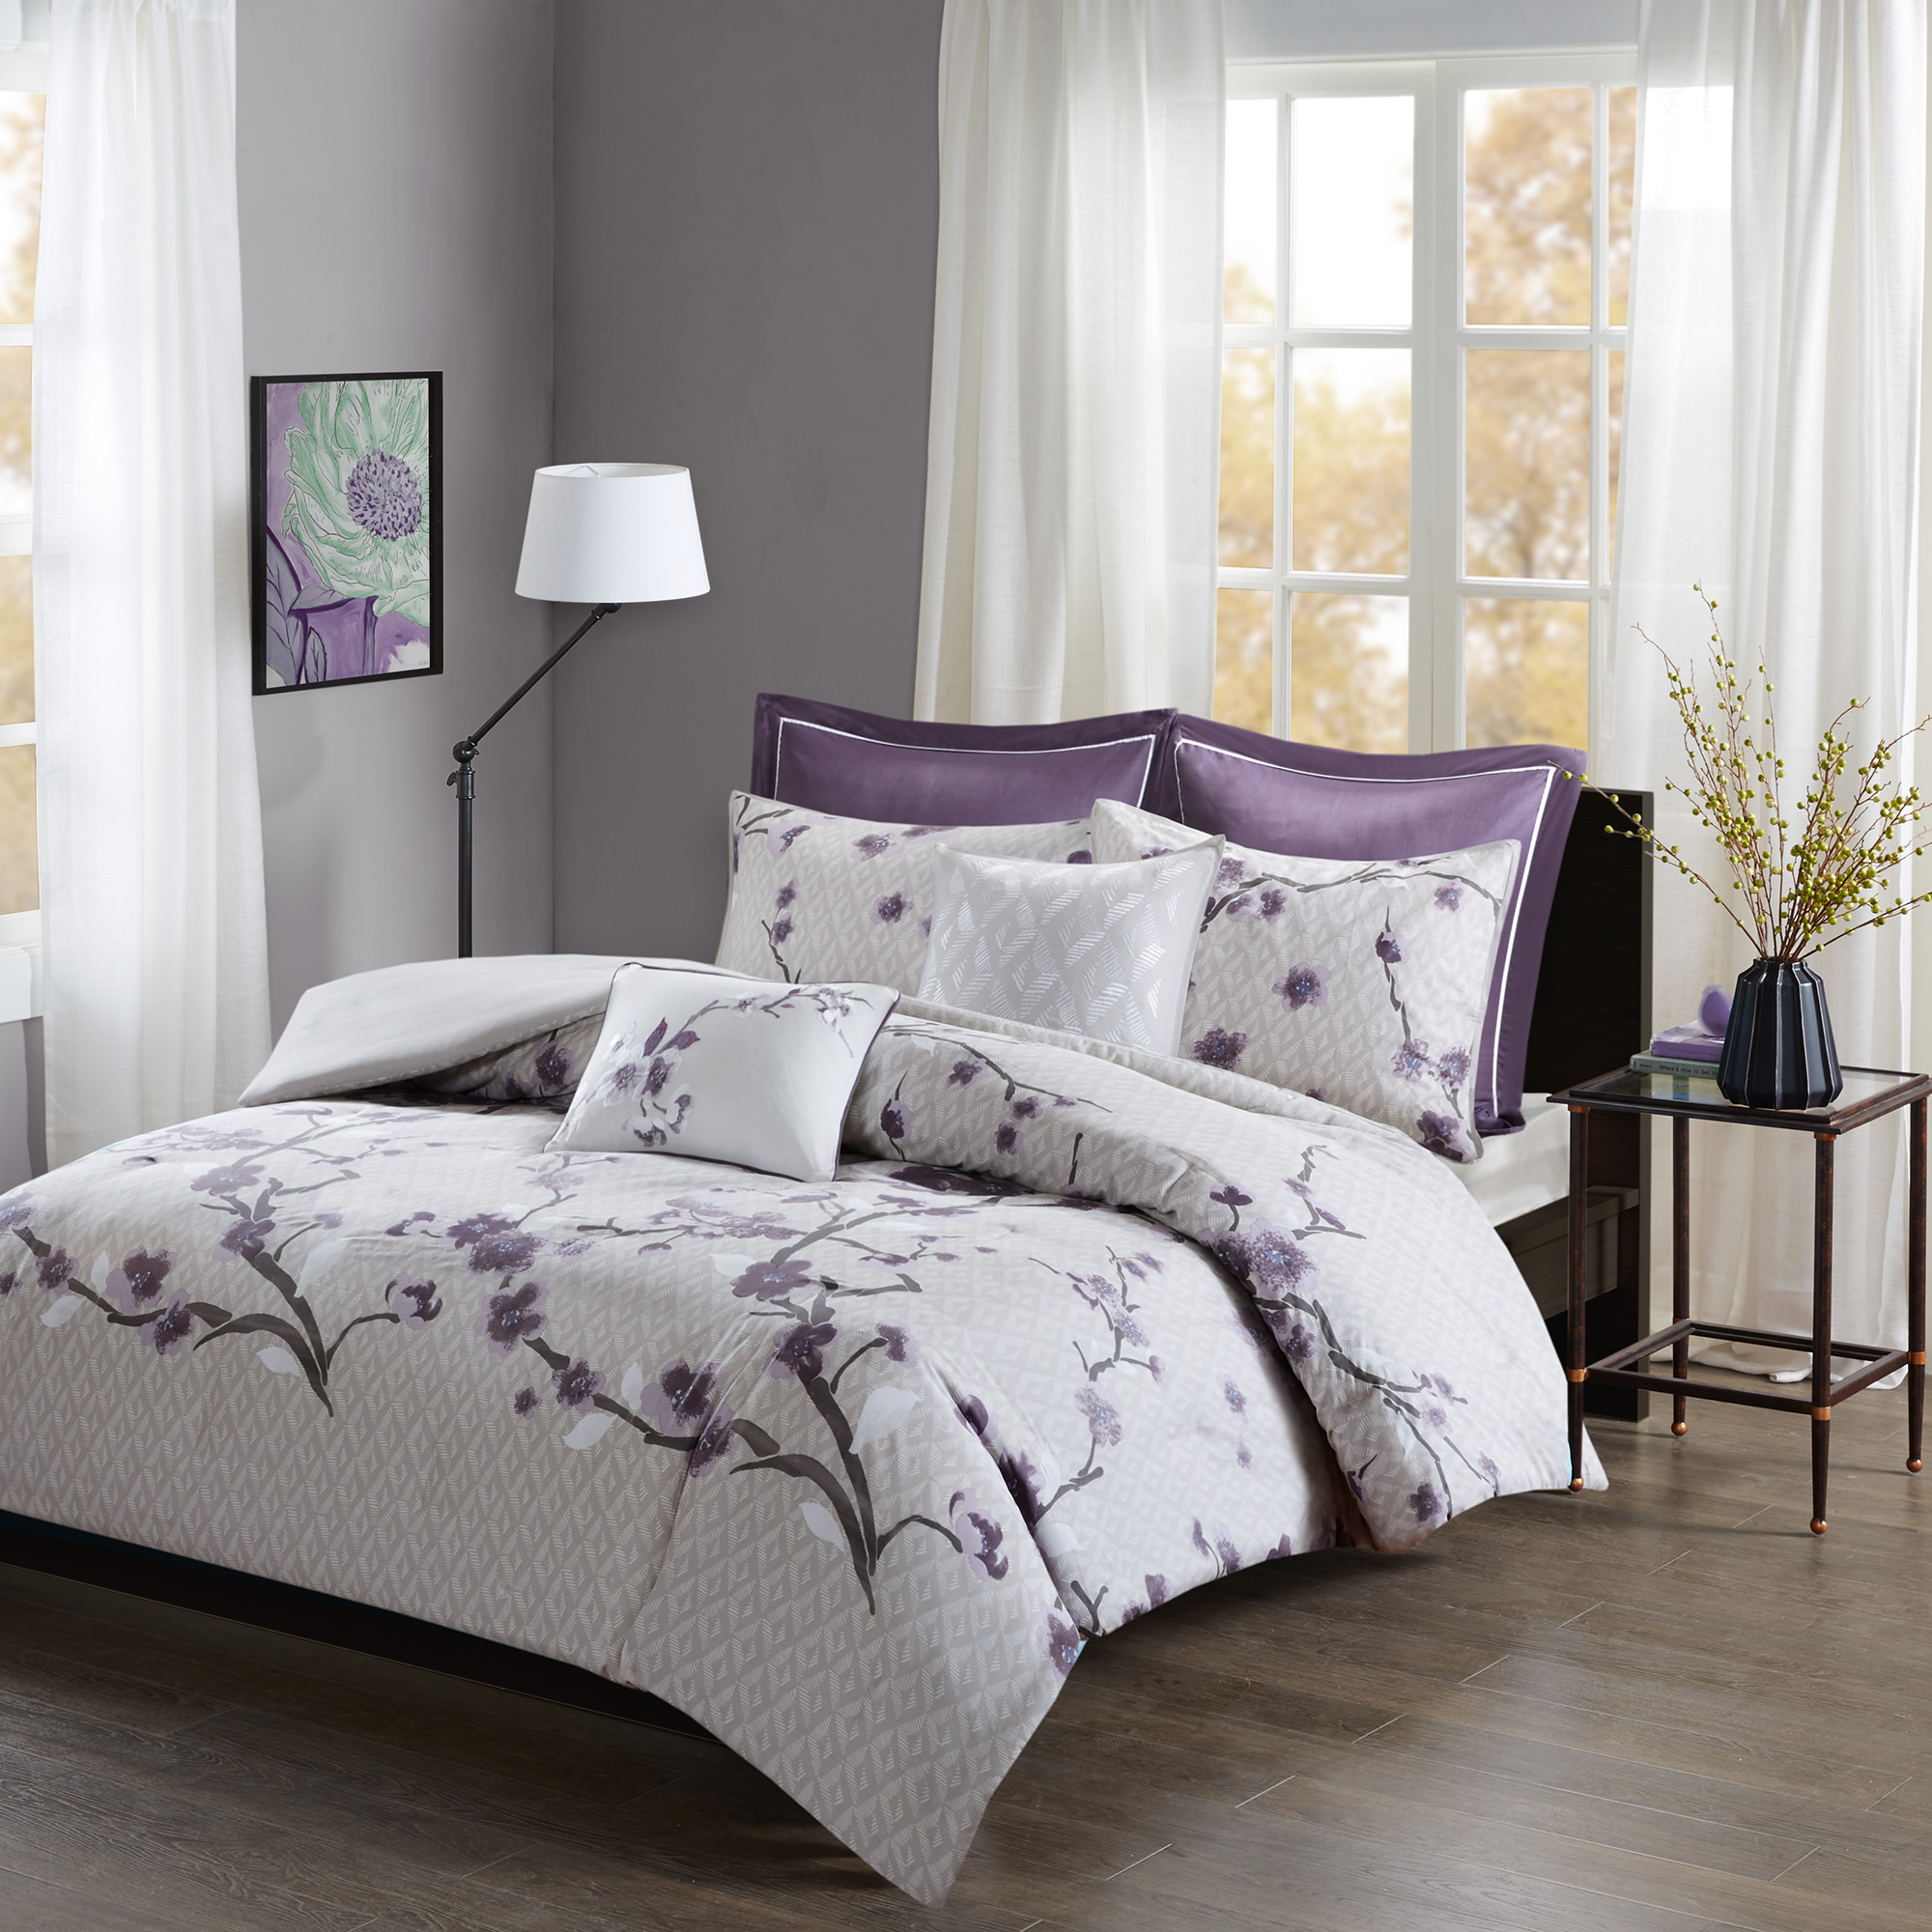 Home Essence Sakura 7 Piece Cotton Duvet Cover Set